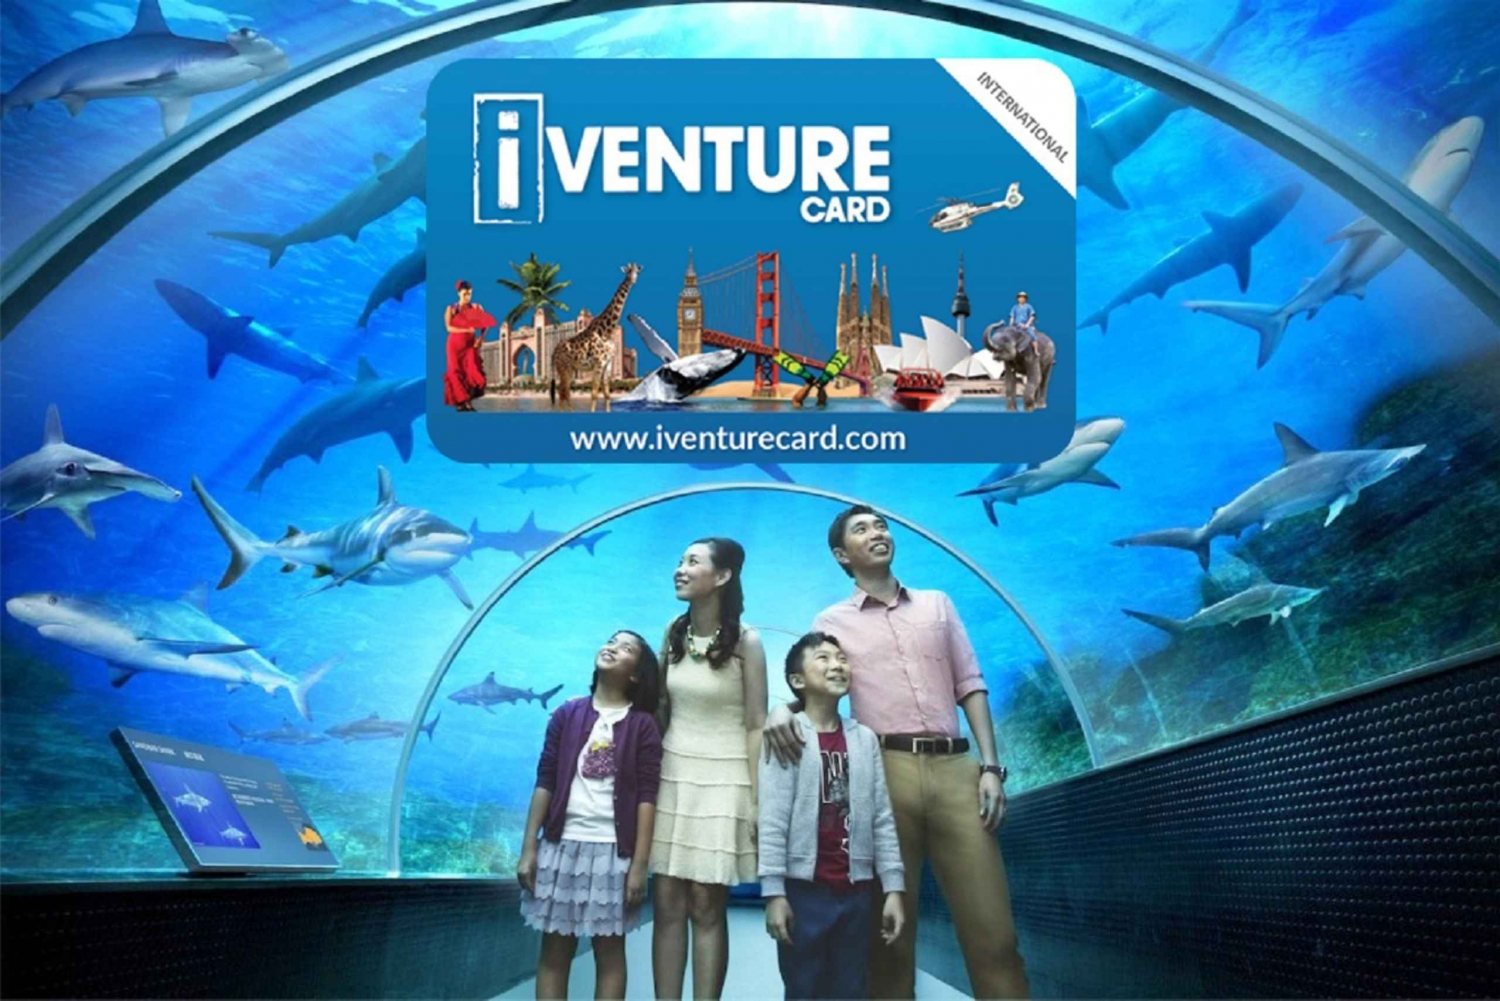 Singapore City Card: Save Up To 50% On Top Attractions